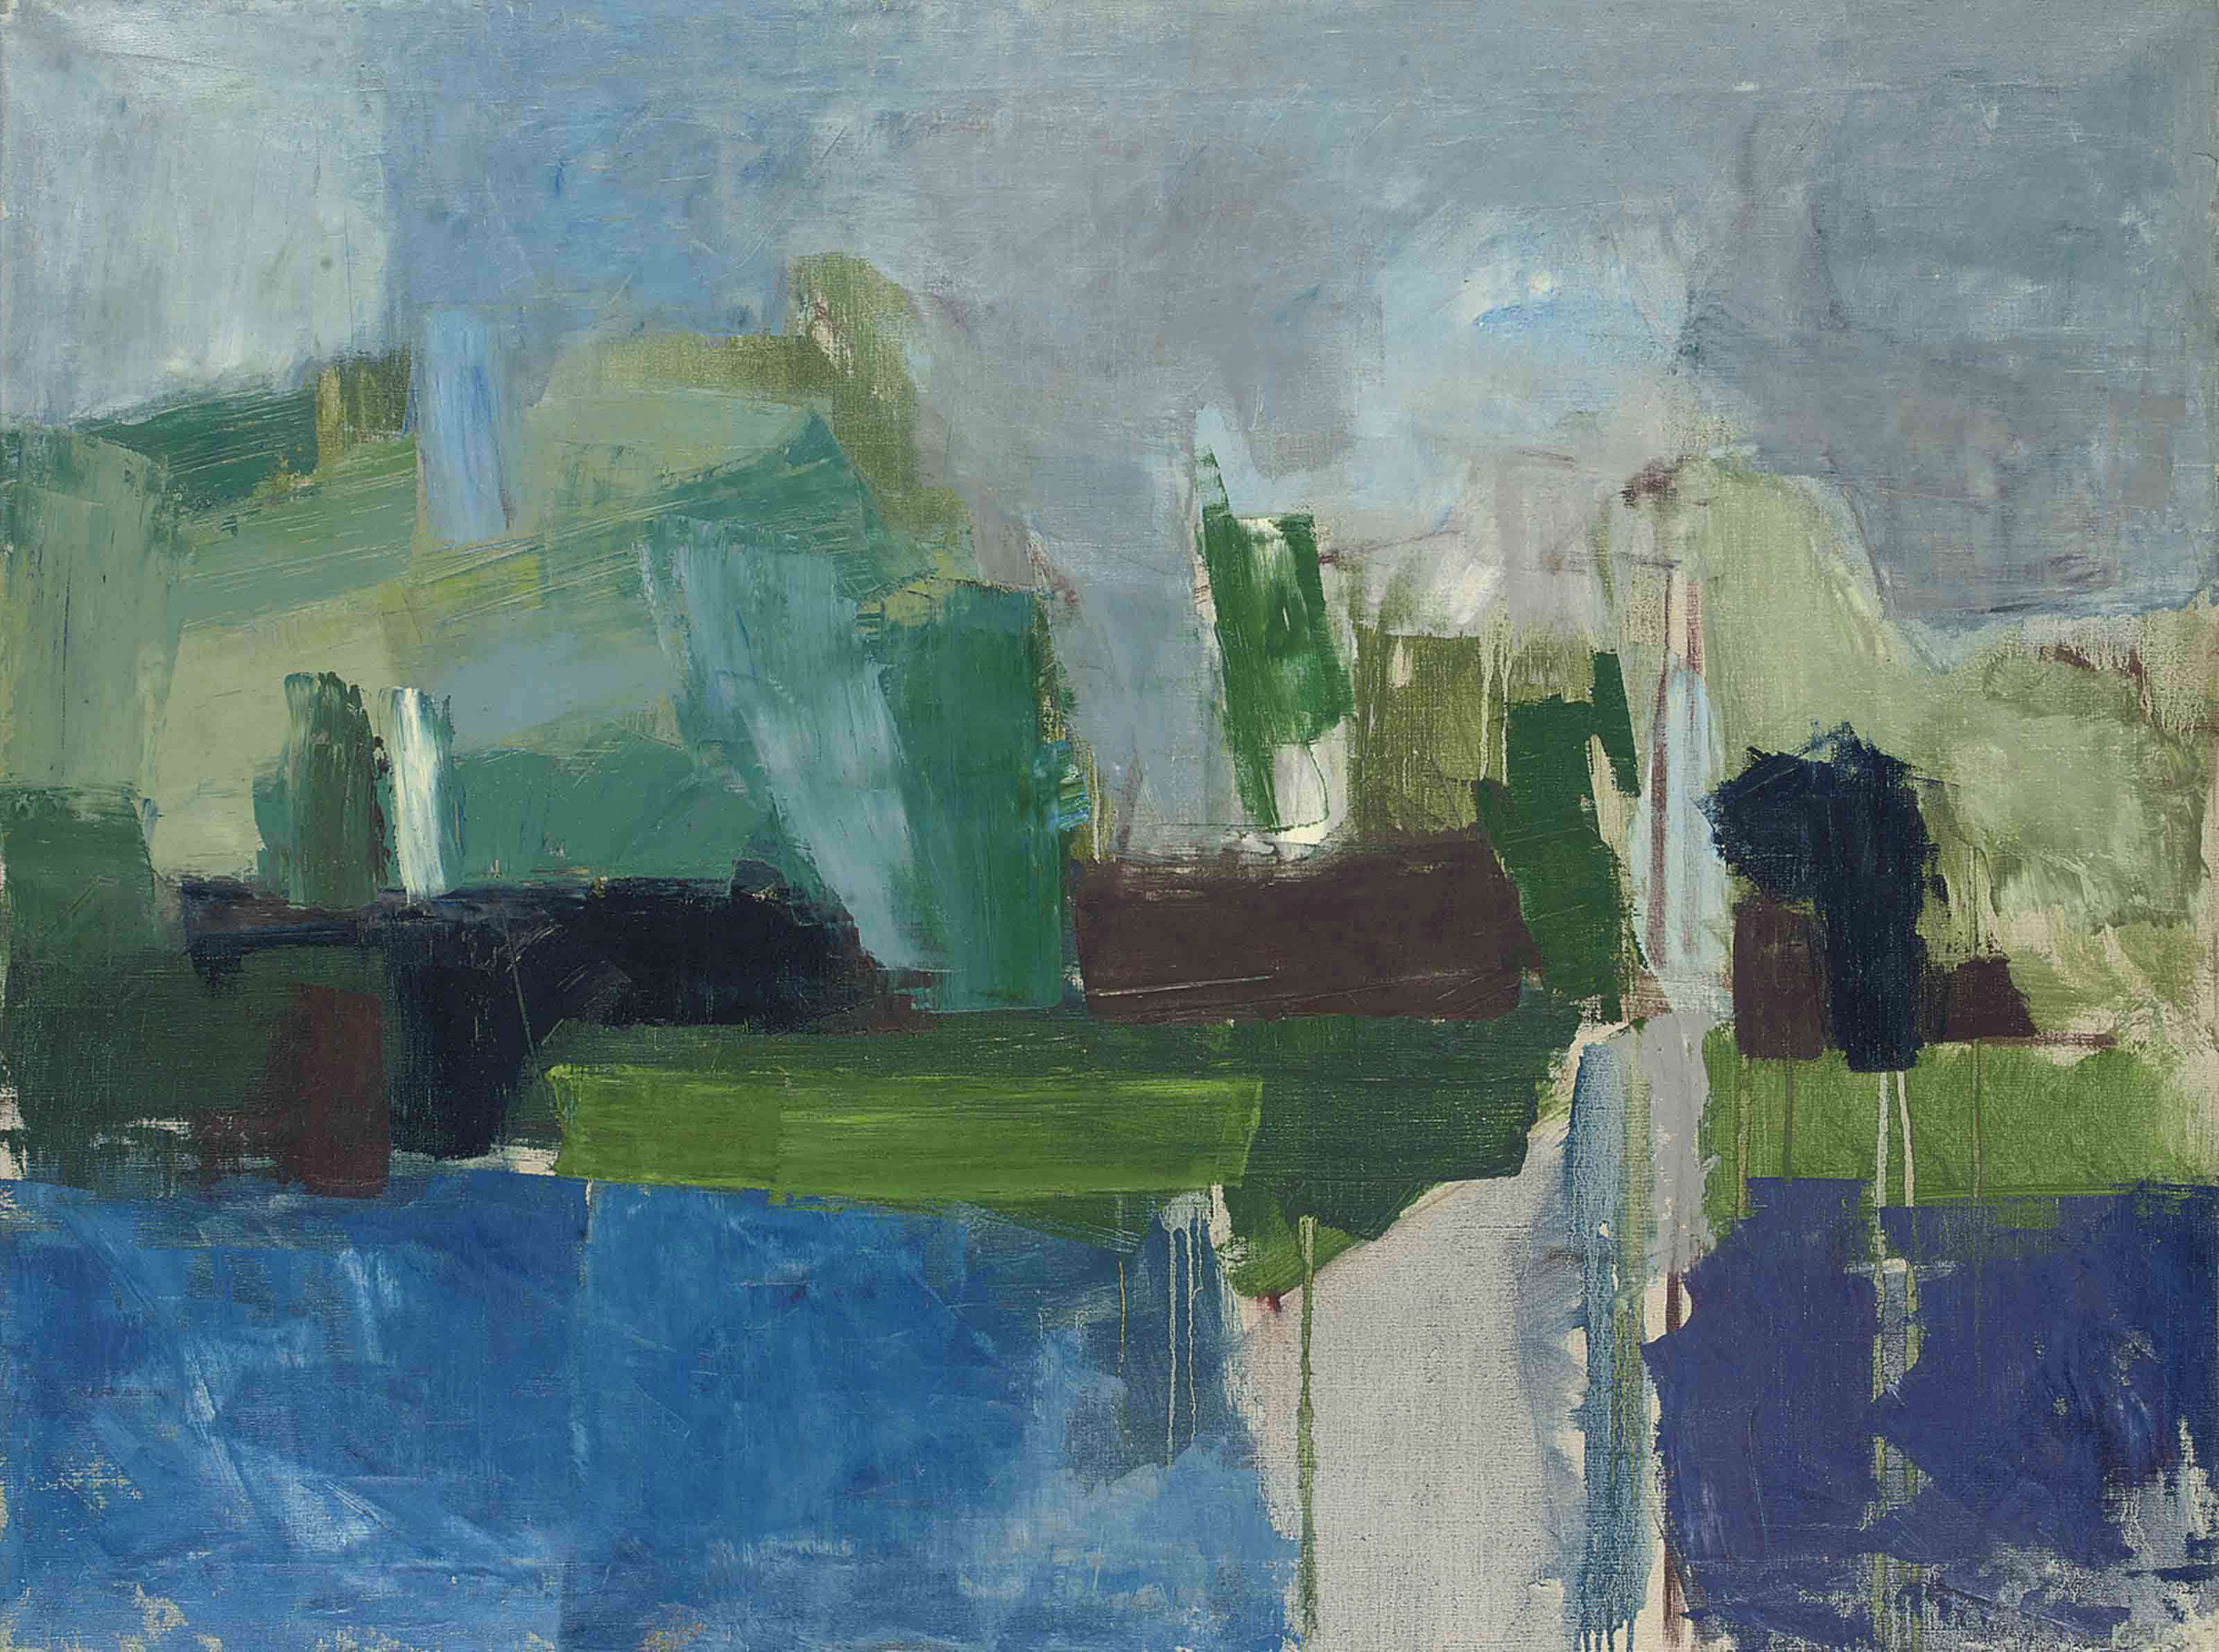 Green and Blue Landscape (The Serpentine)